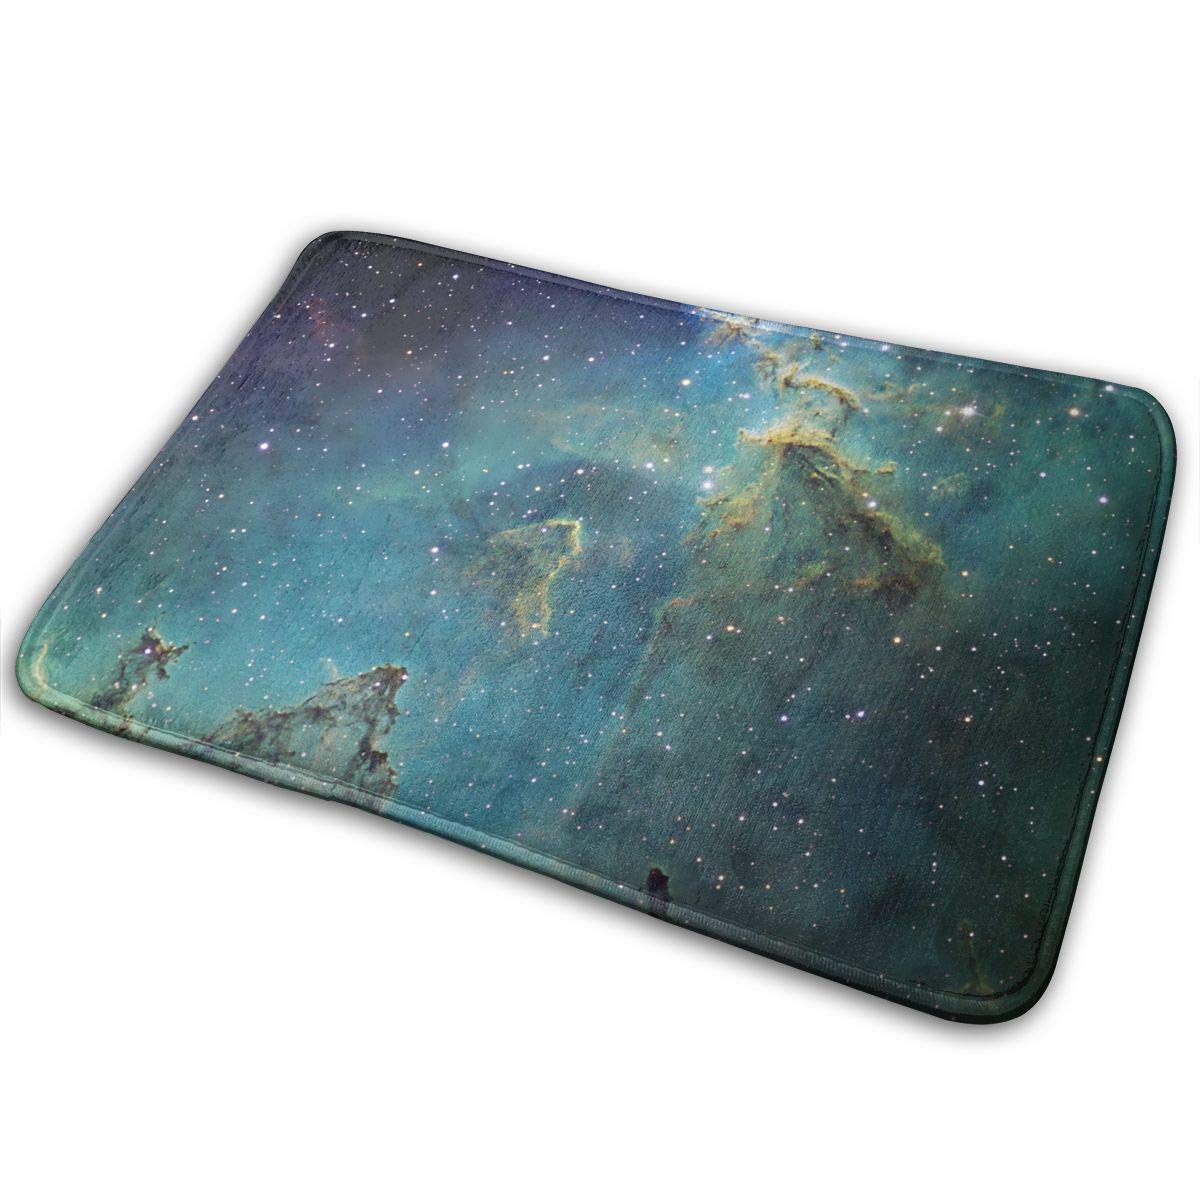 W X 19.7 Inch L Blue Green Universe,Non-Slip Machine Washable Door Mats Home Decor Rug Floor Mat Thicken Playmat Multi-Purpose Floorcover 31.5